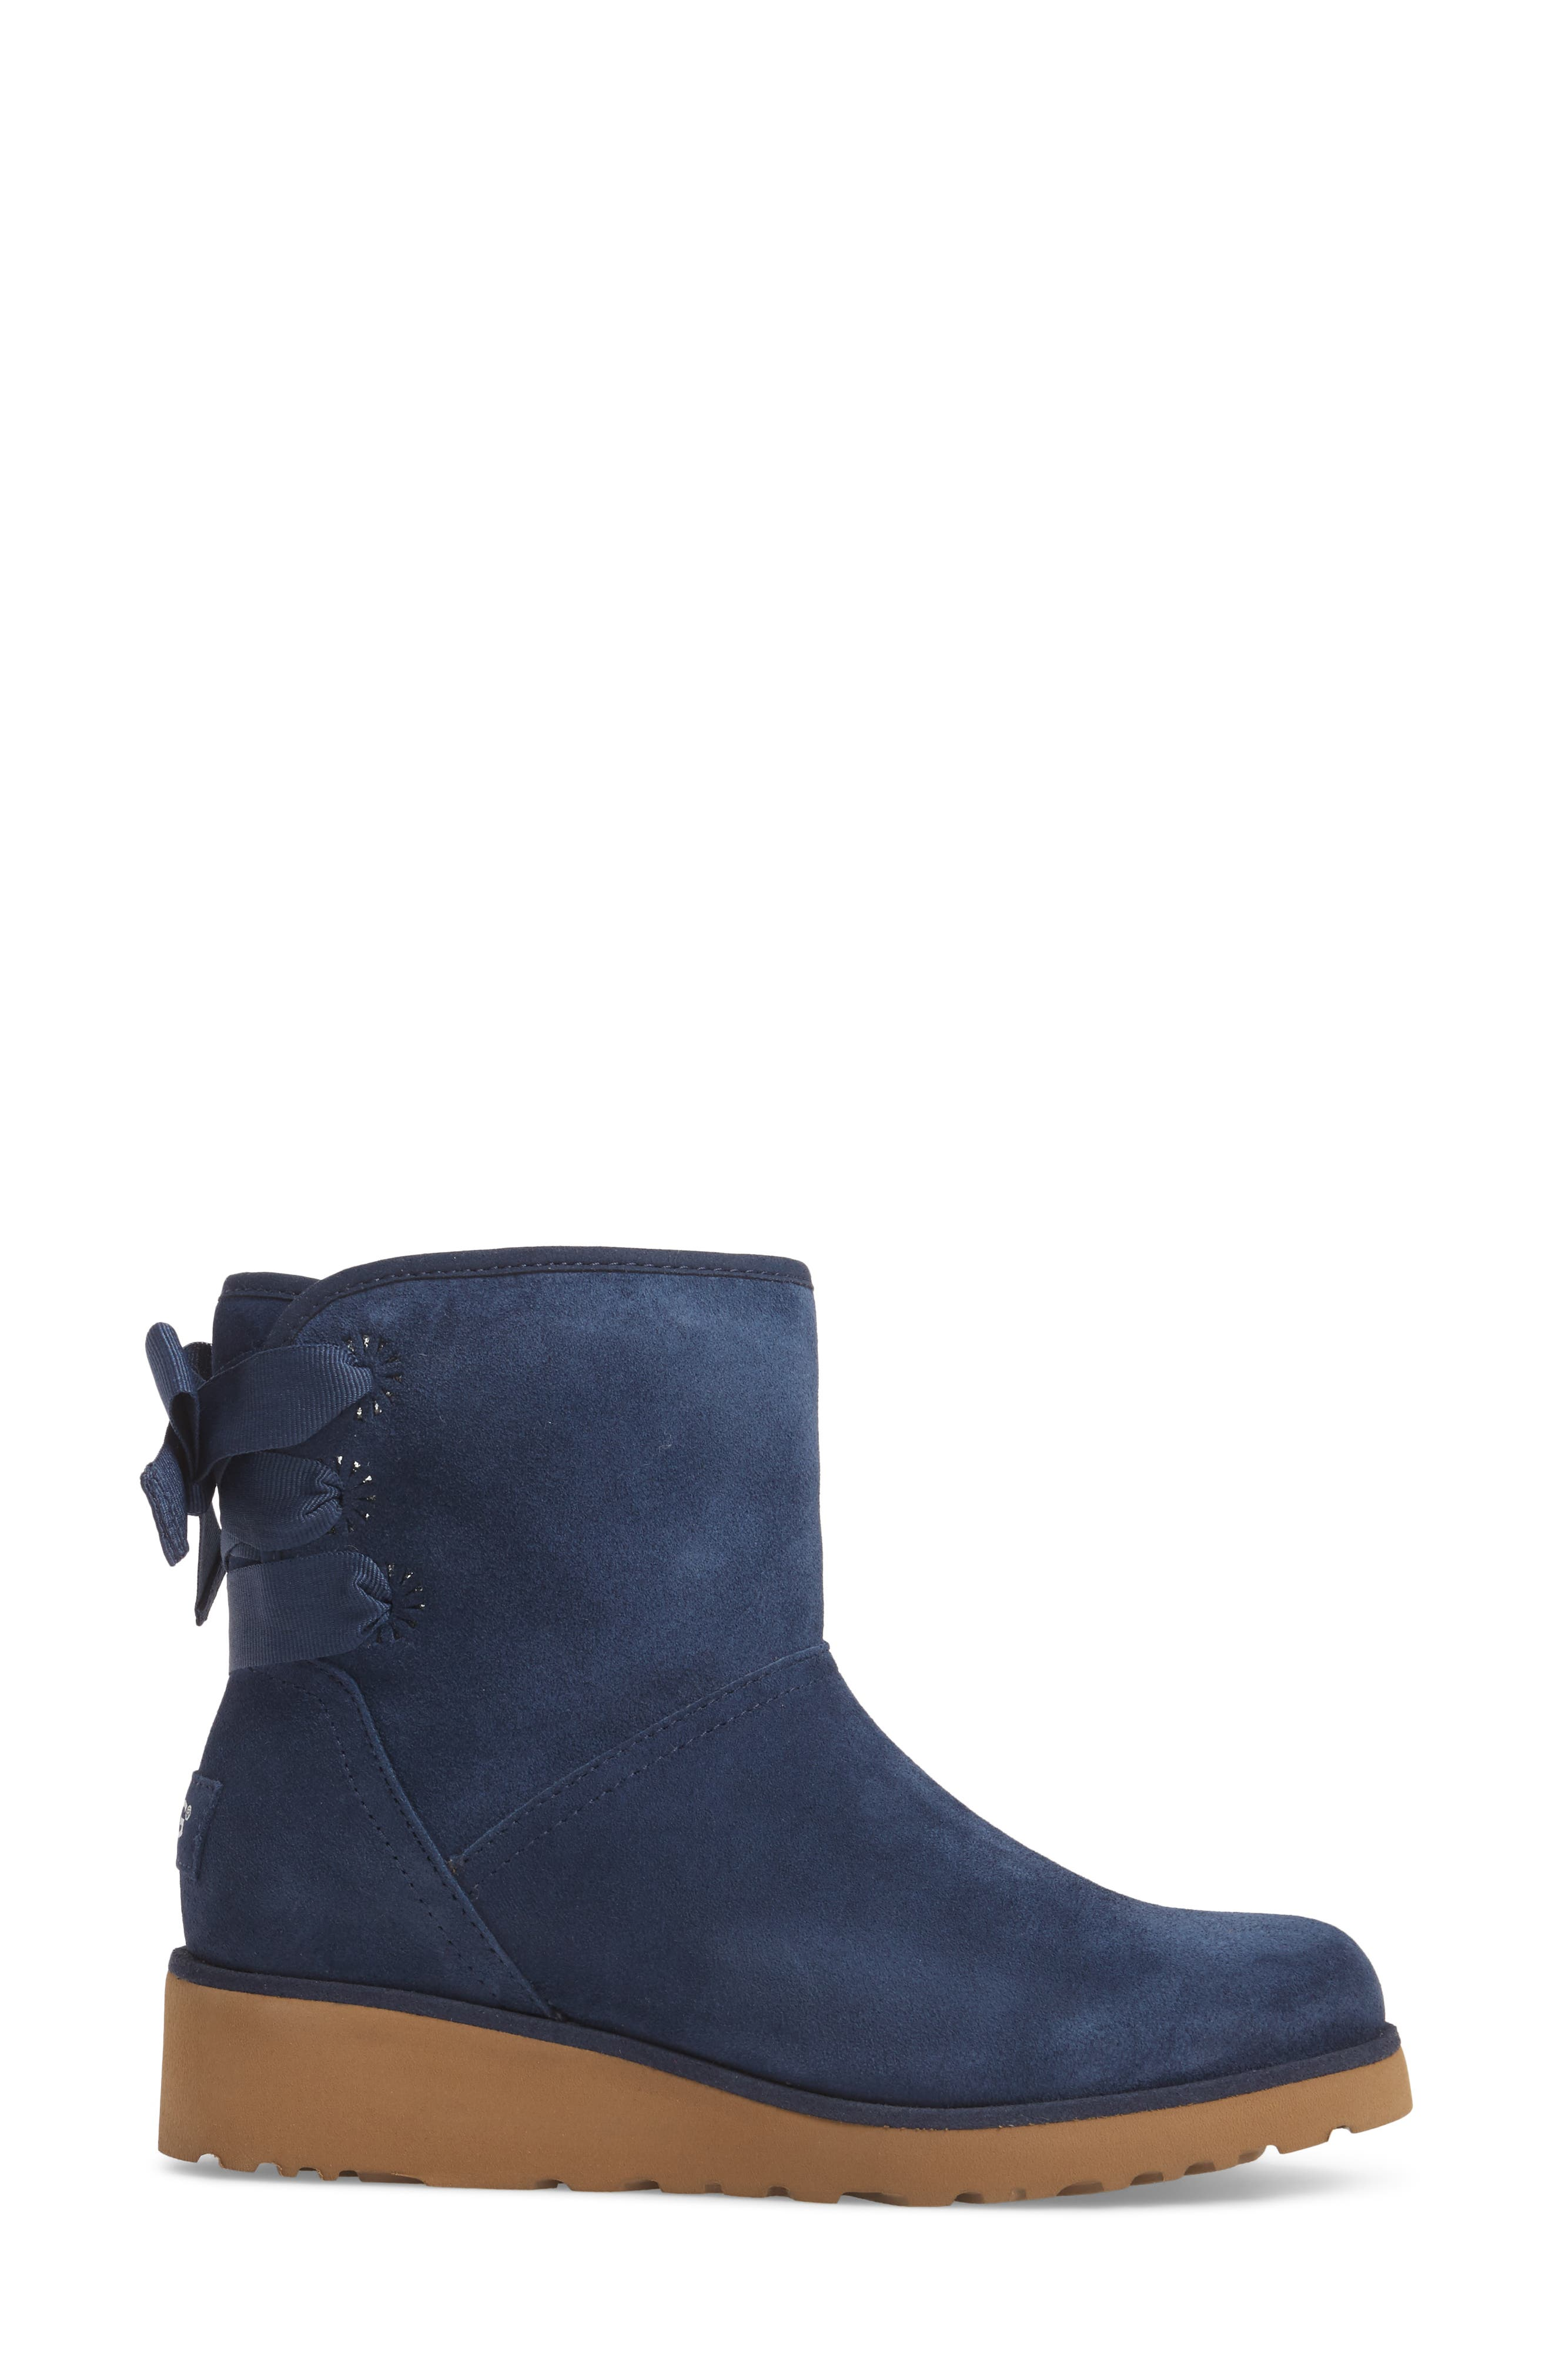 Drew Sunshine Perforated Tie Back Boot,                             Alternate thumbnail 9, color,